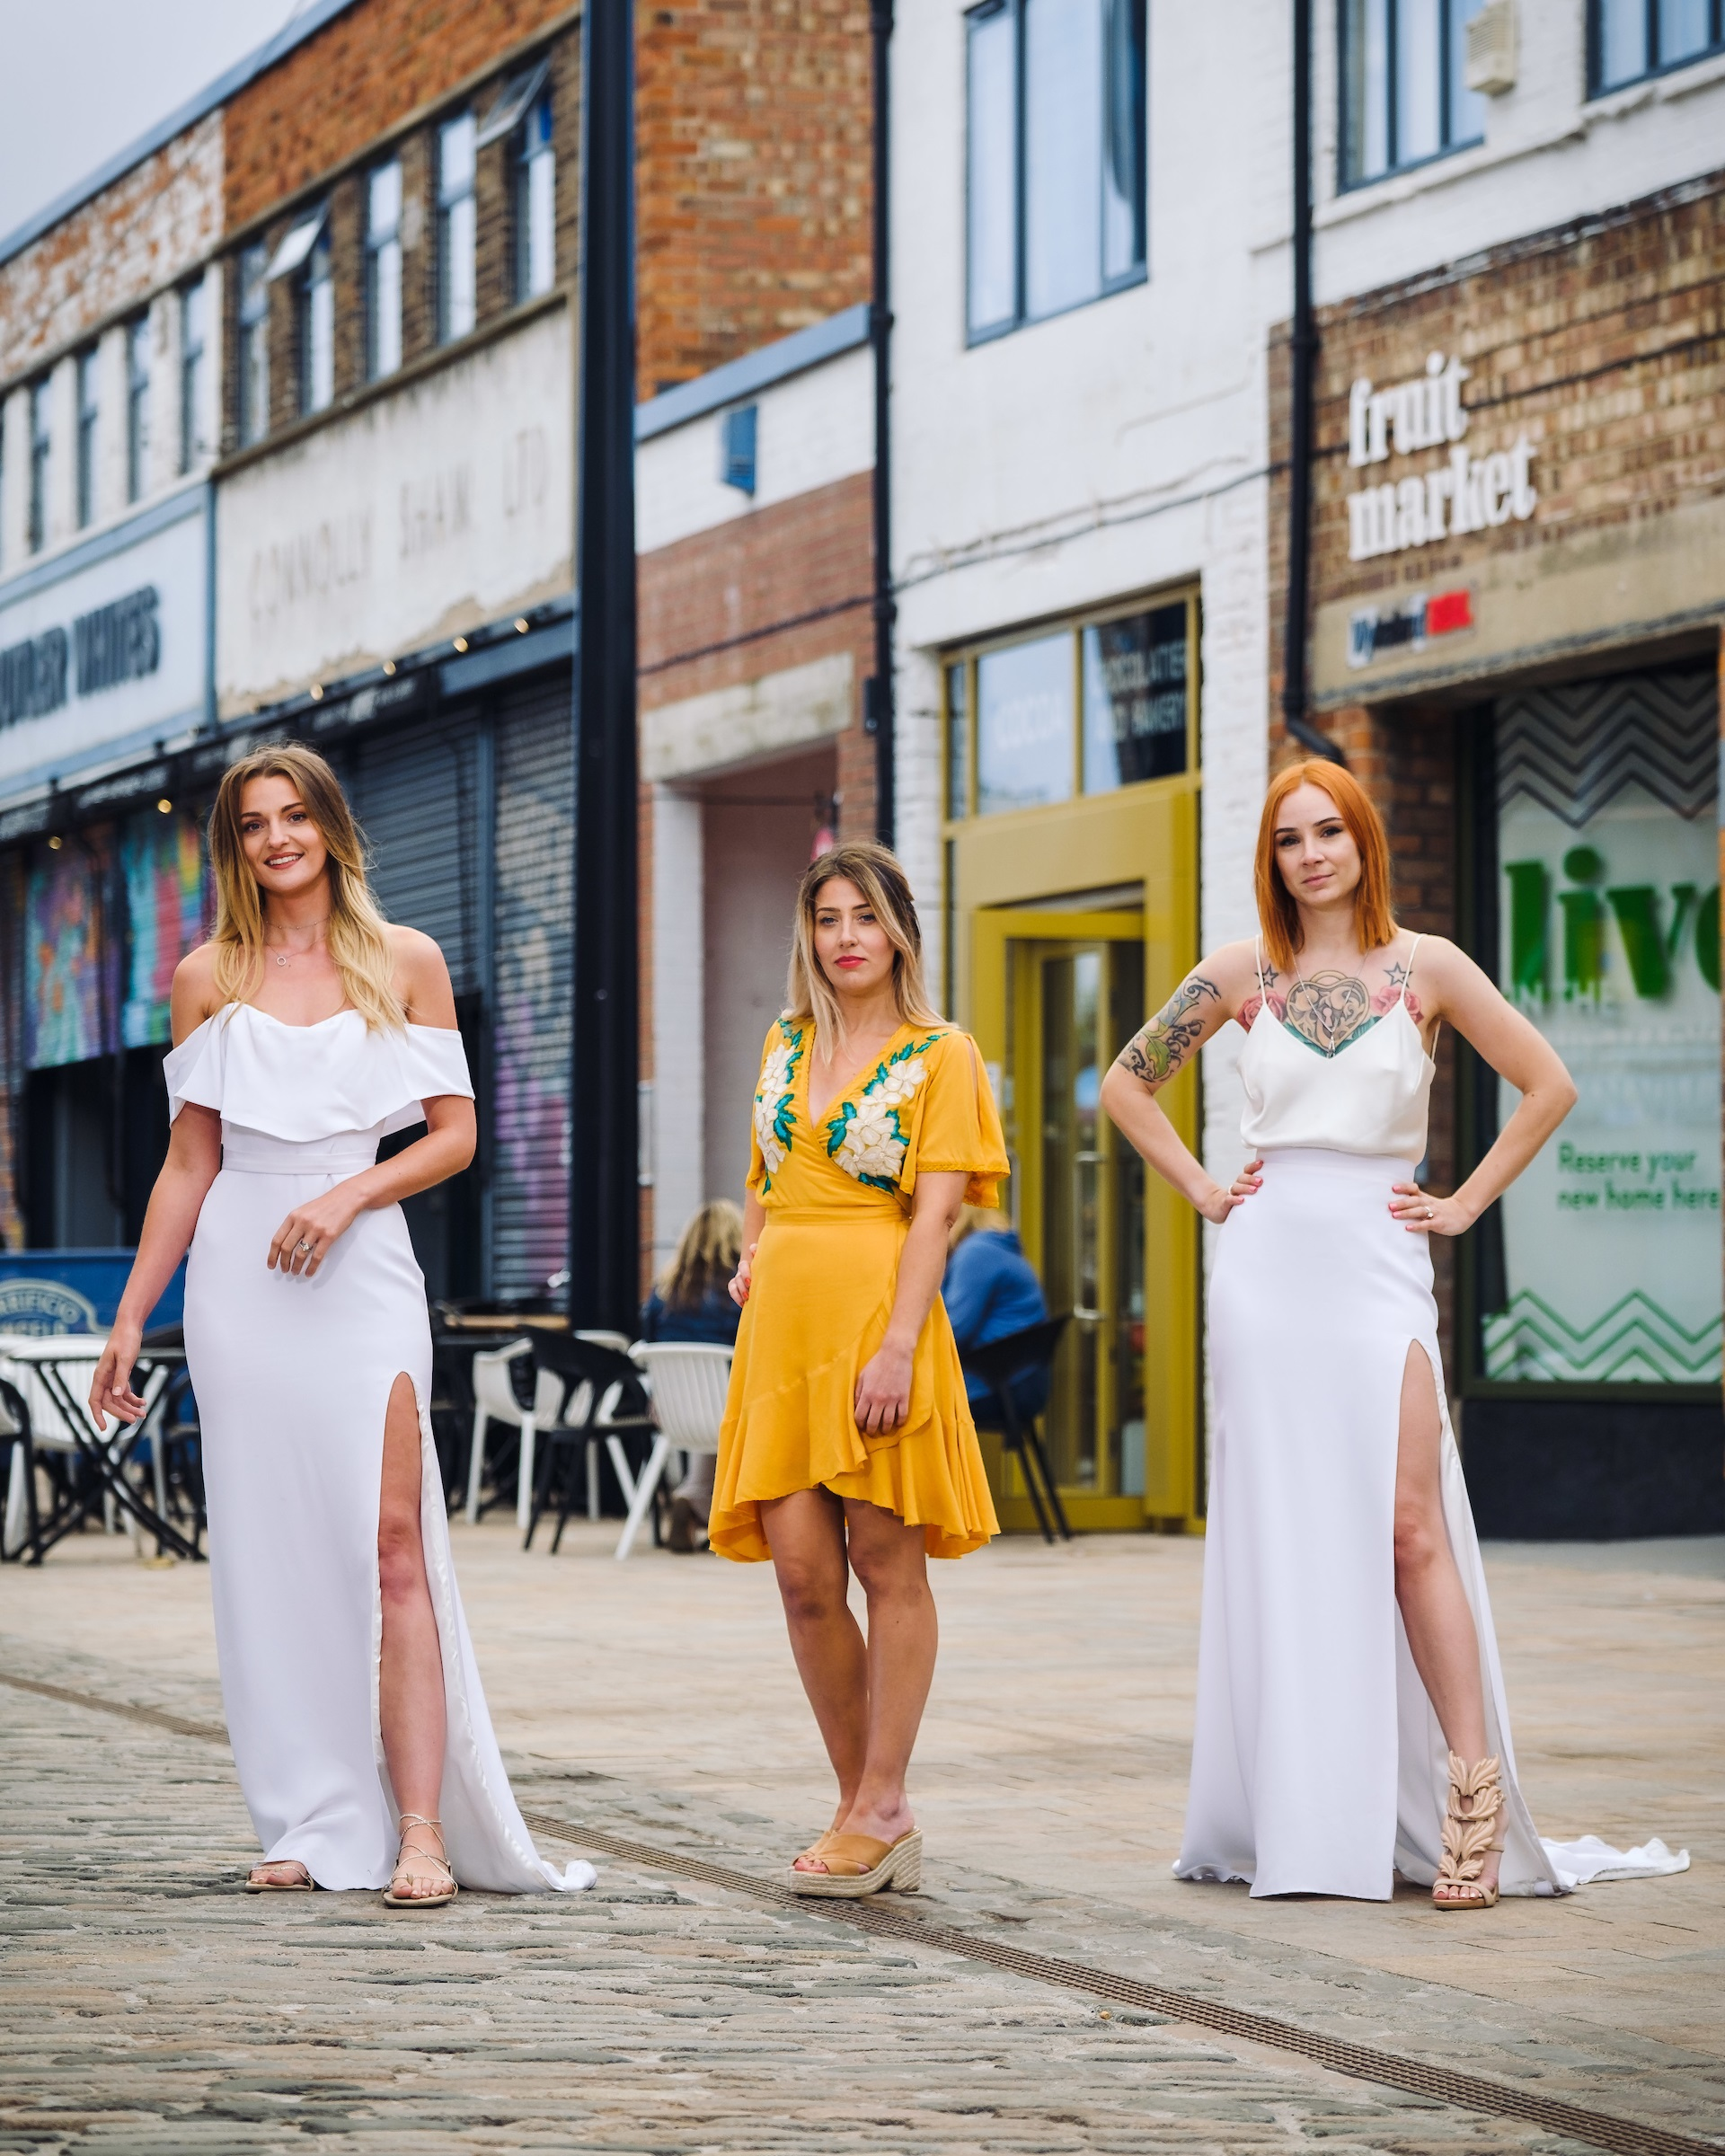 Owner Katey Headley, centre, in Humber Street where she plans to open Ghost Orchid Bride. She is pictured with past customers Joanne Hill, left, and Hayley Sykes.